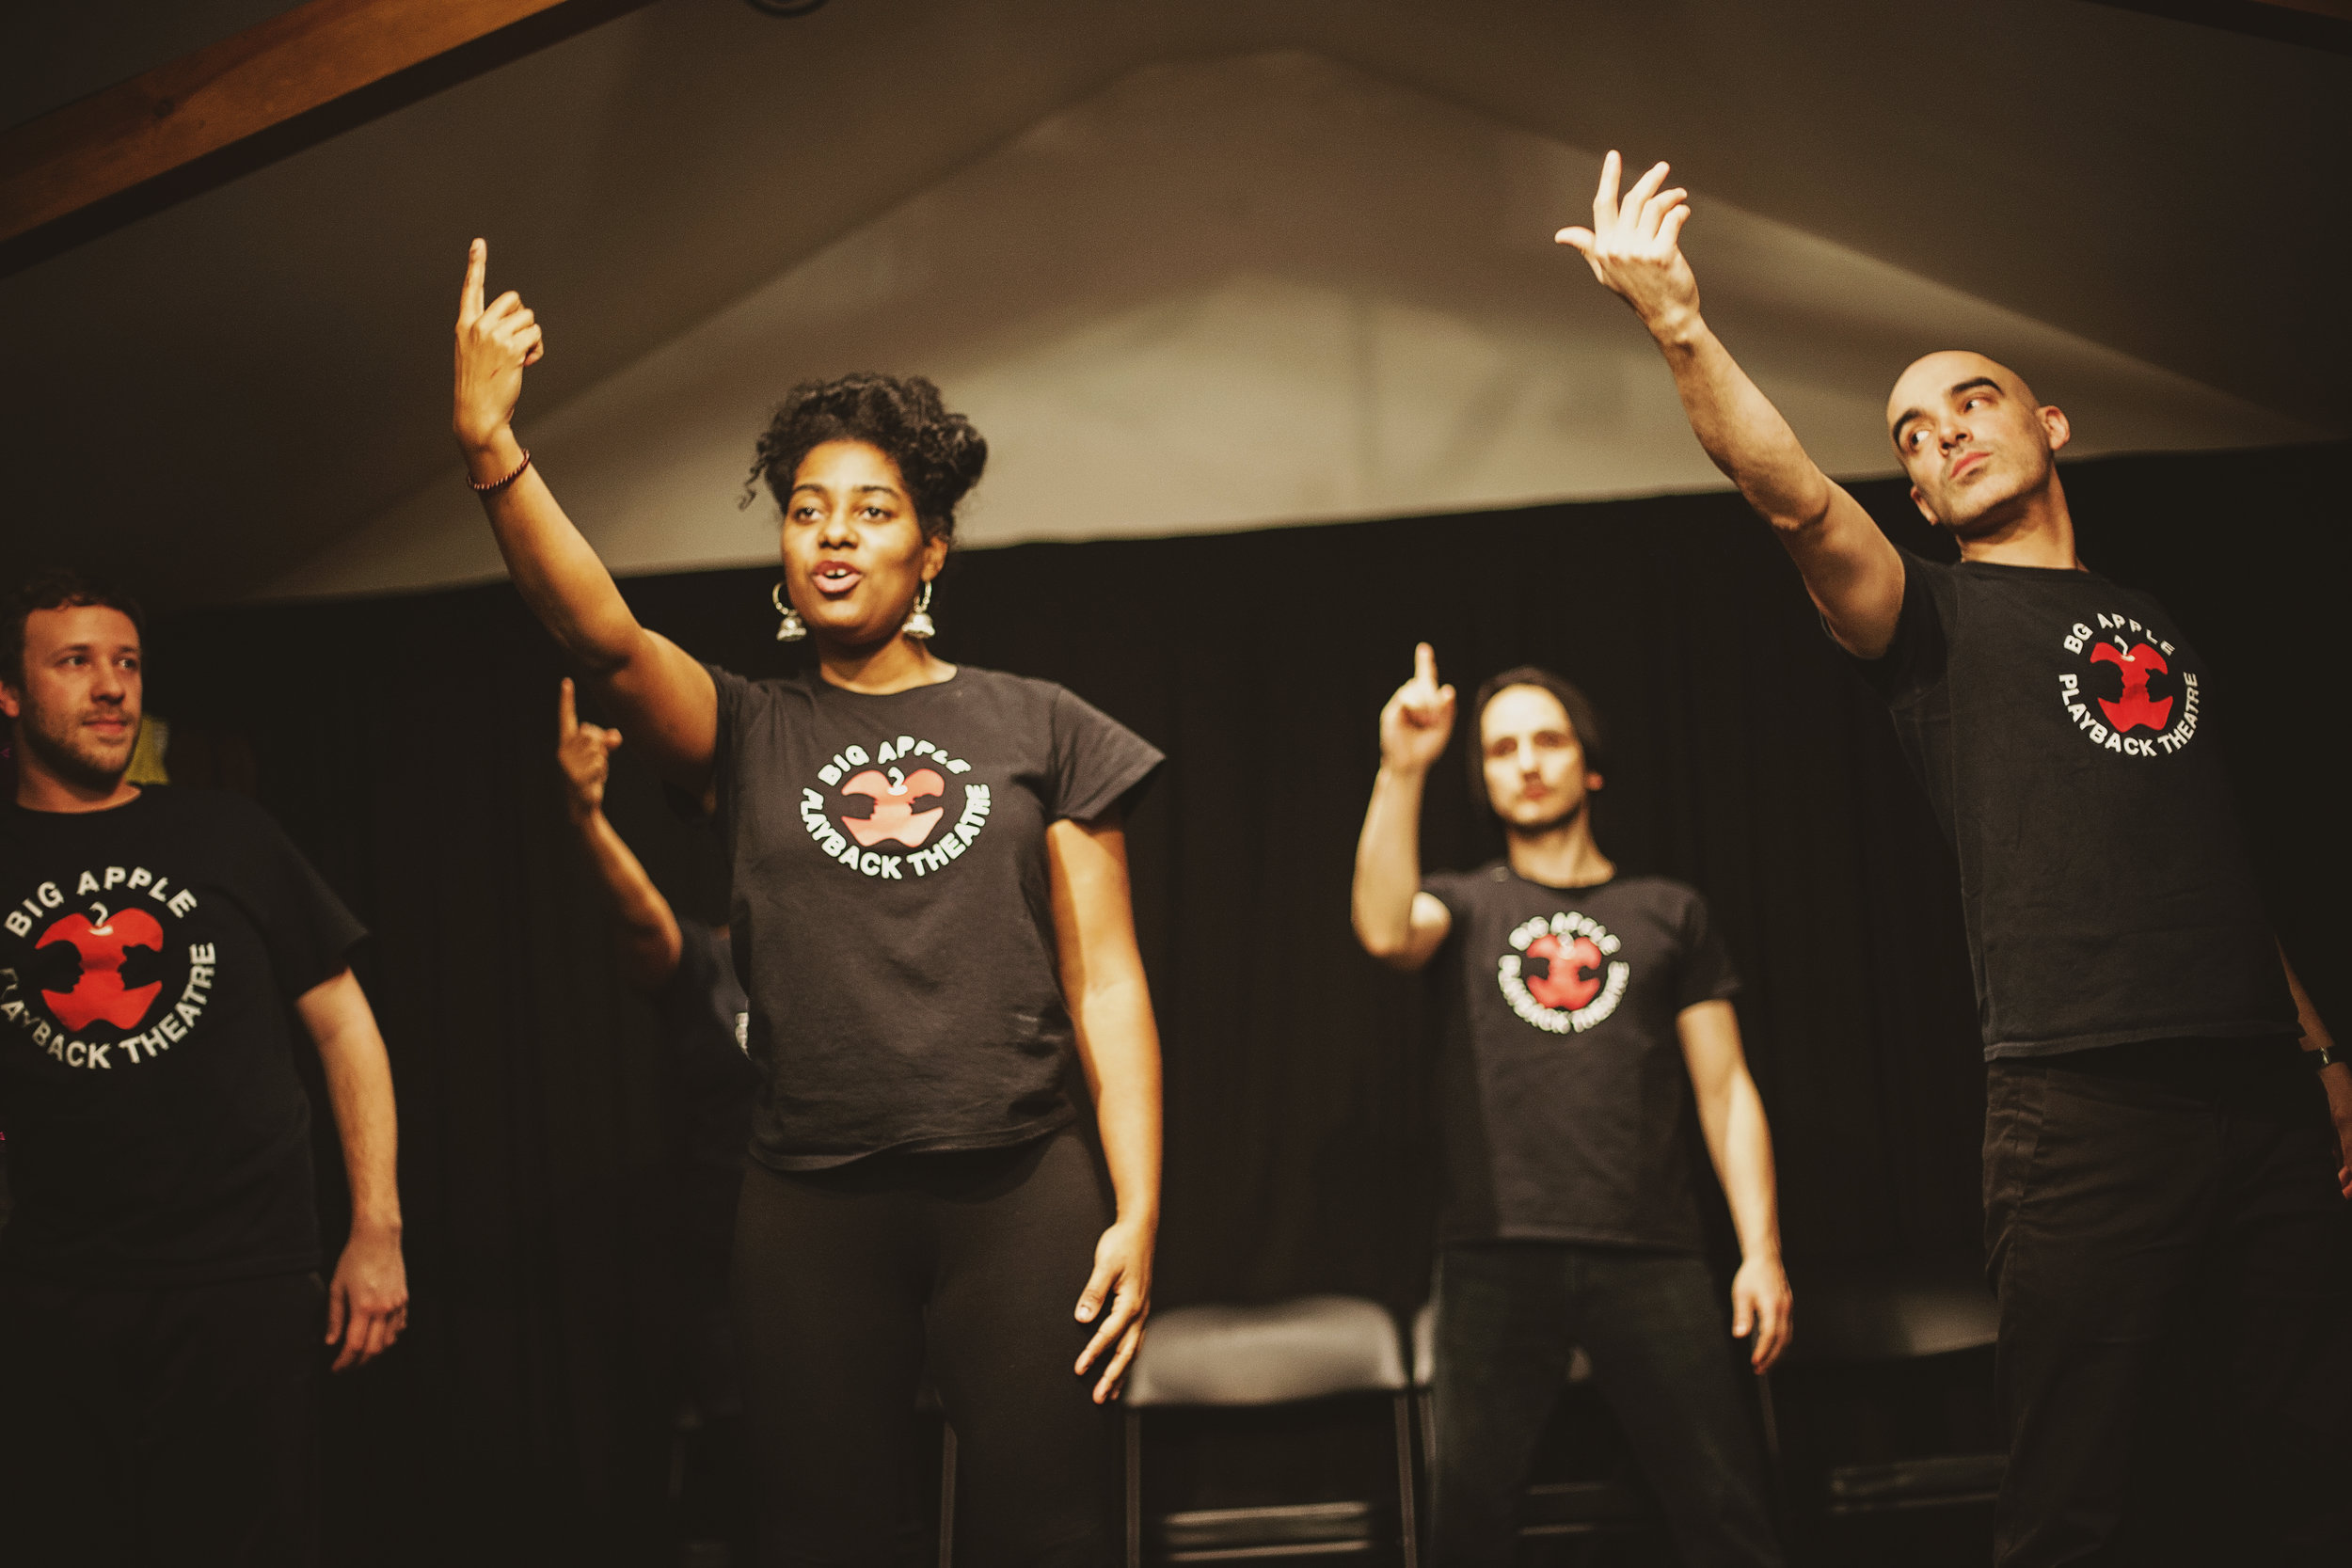 Big Apple Playback Theatre welcomes all communities to join us in sharing stories and working towards a world where all voices and experiences are heard, valued and respected.